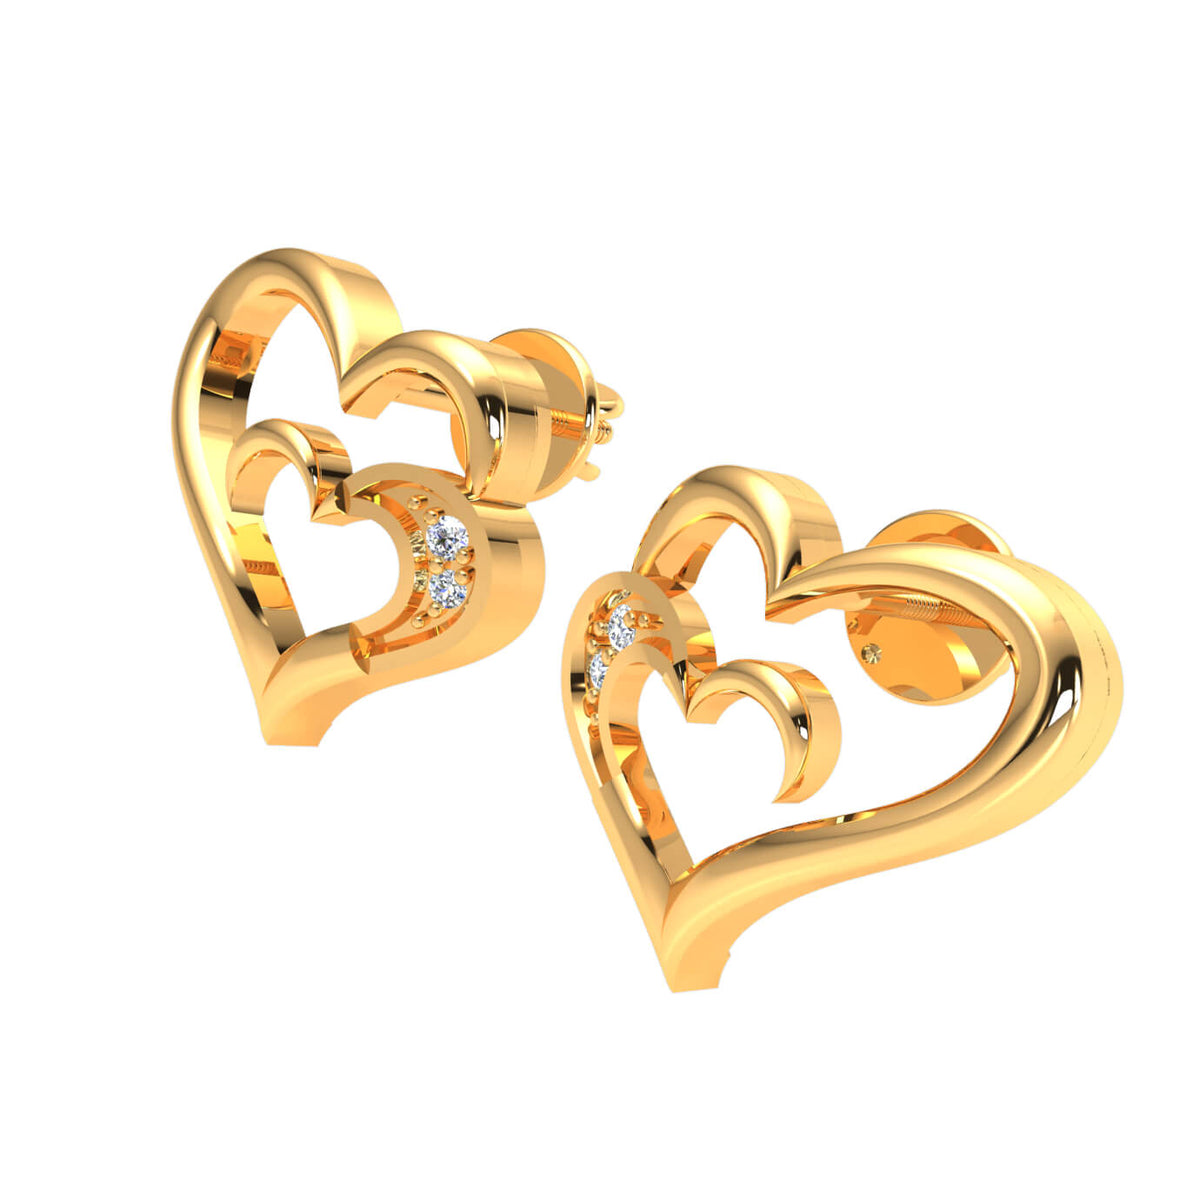 0.02 Ct Stud Round GH I1-I2 Diamond Heart Earrings 925 Sterling Silver